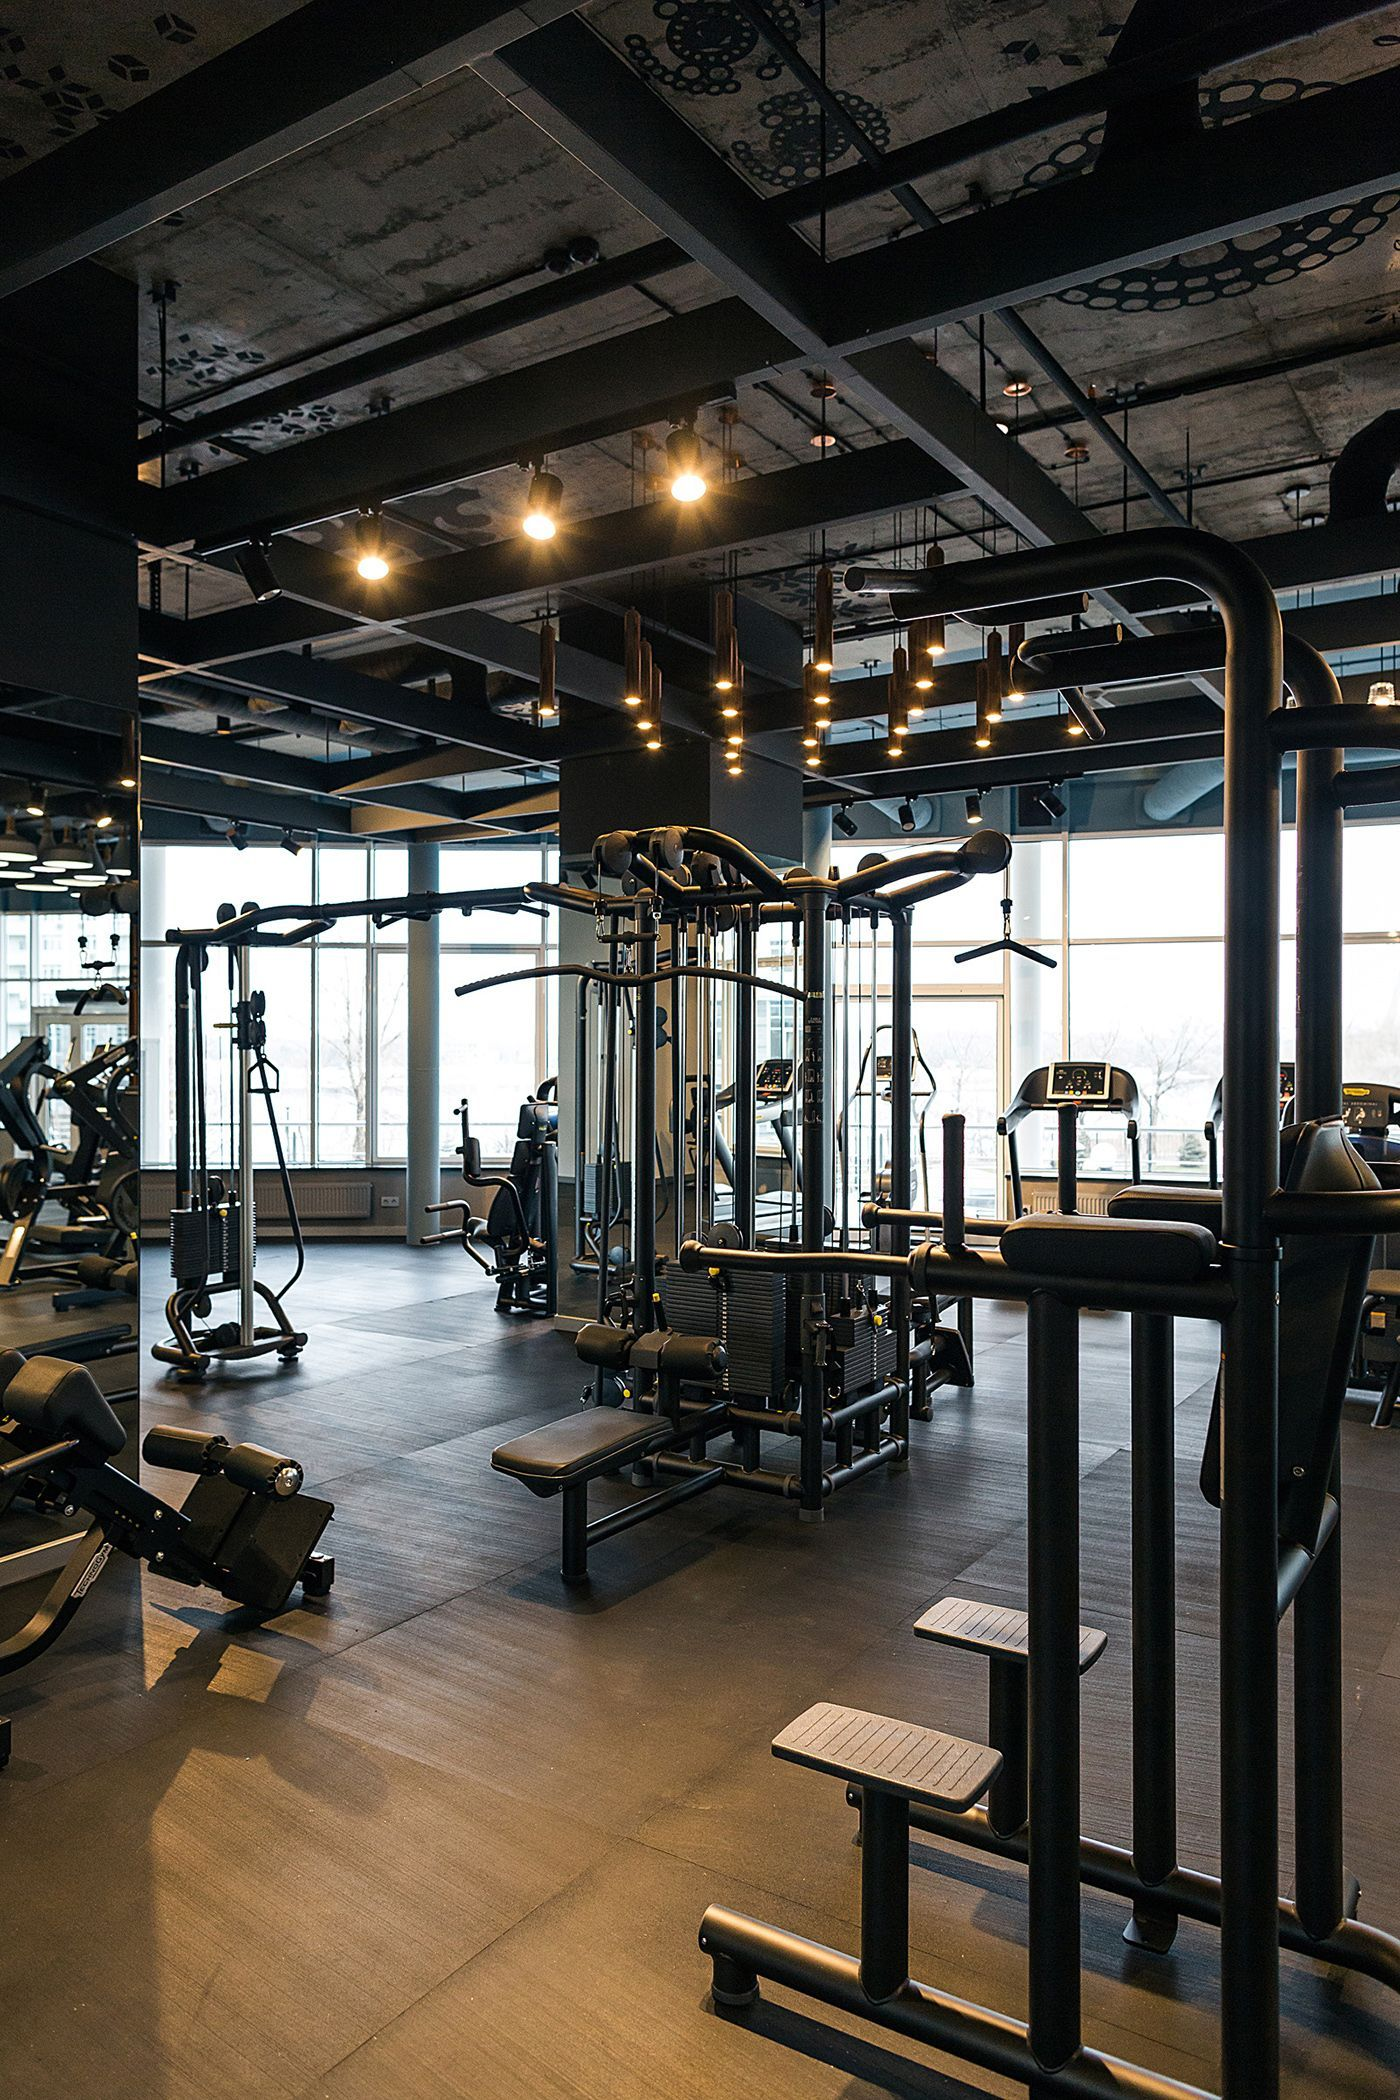 Fitness Club PALESTRA -  PALESTRA Fitness Club (full project) on Behance  - #club #Fitness #PALESTRA